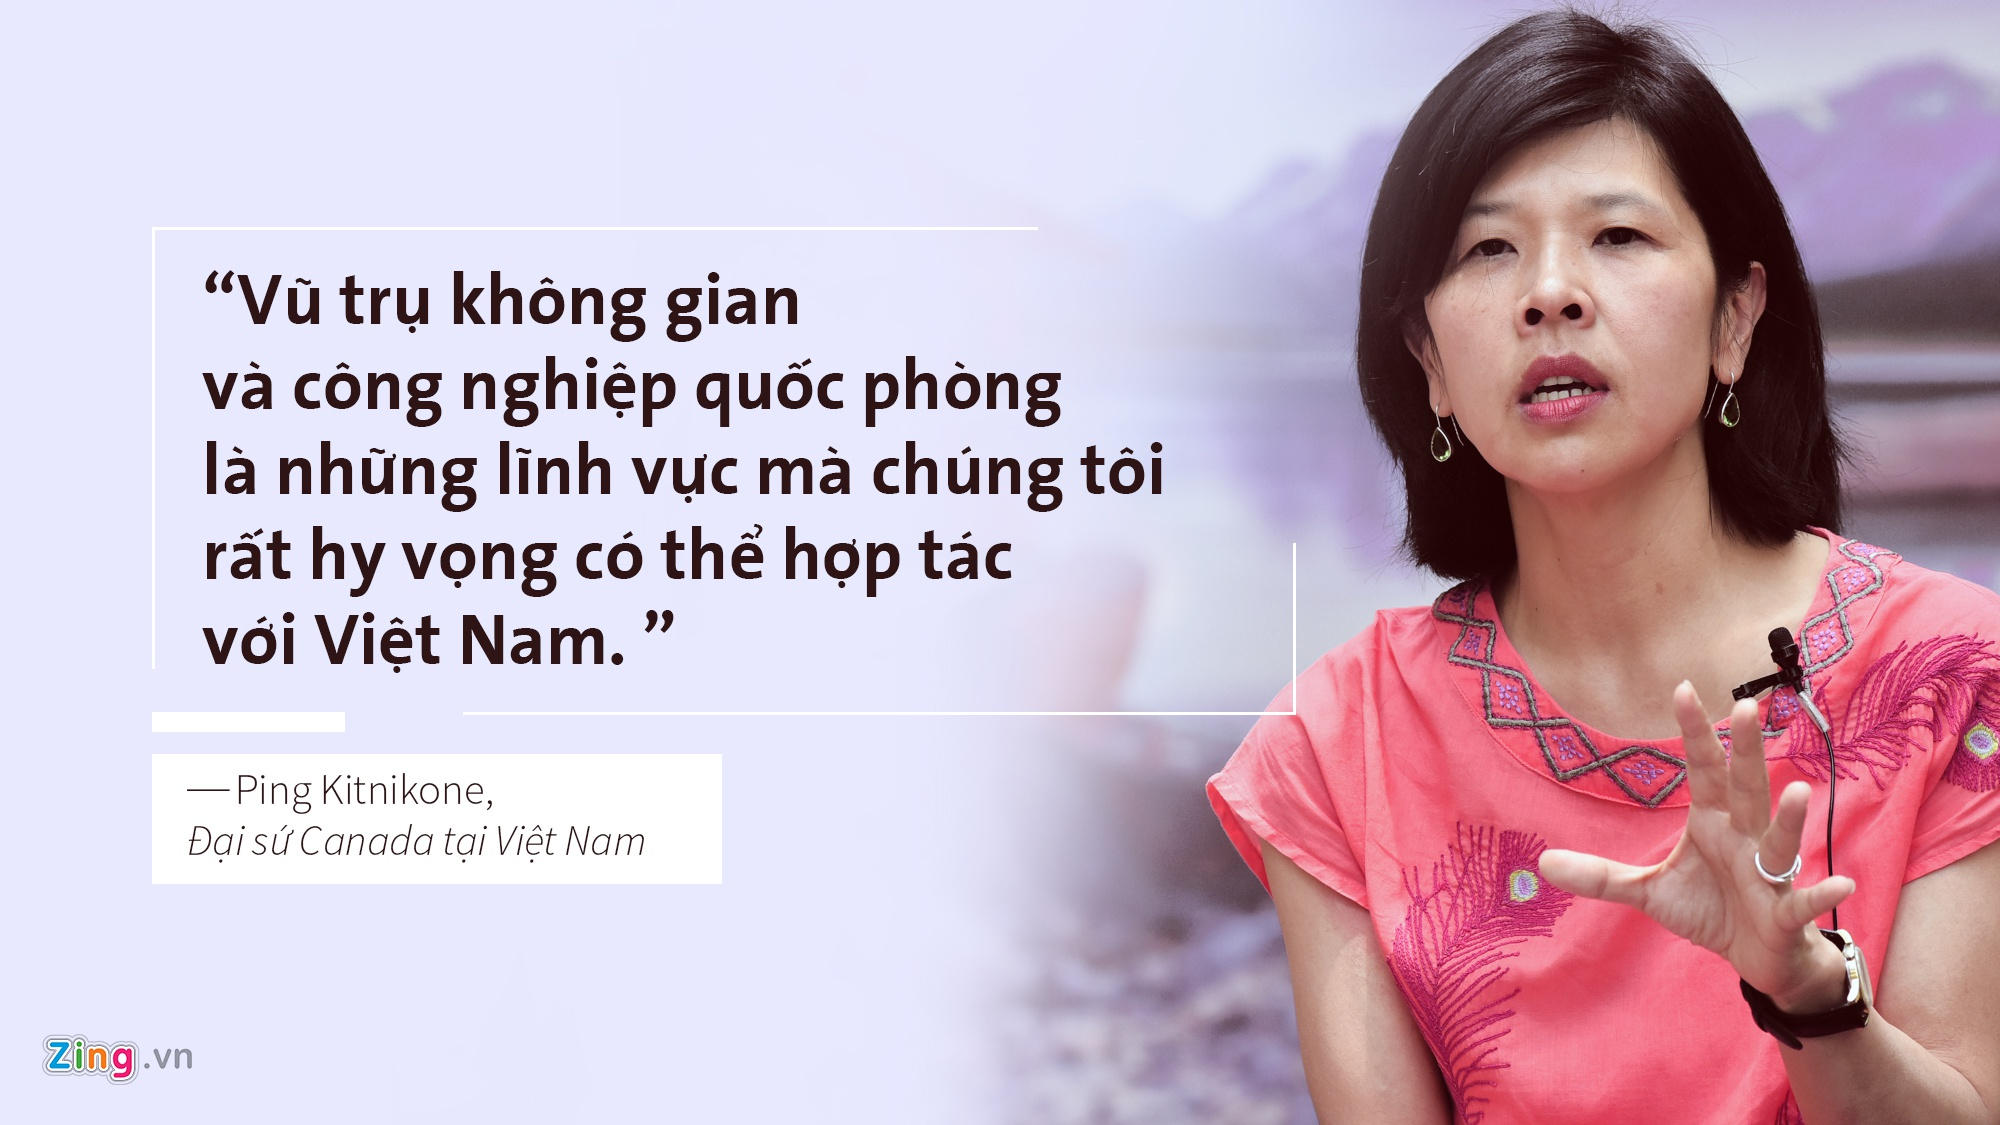 Canada muon thuc day hop tac quoc phong voi Viet Nam hinh anh 3